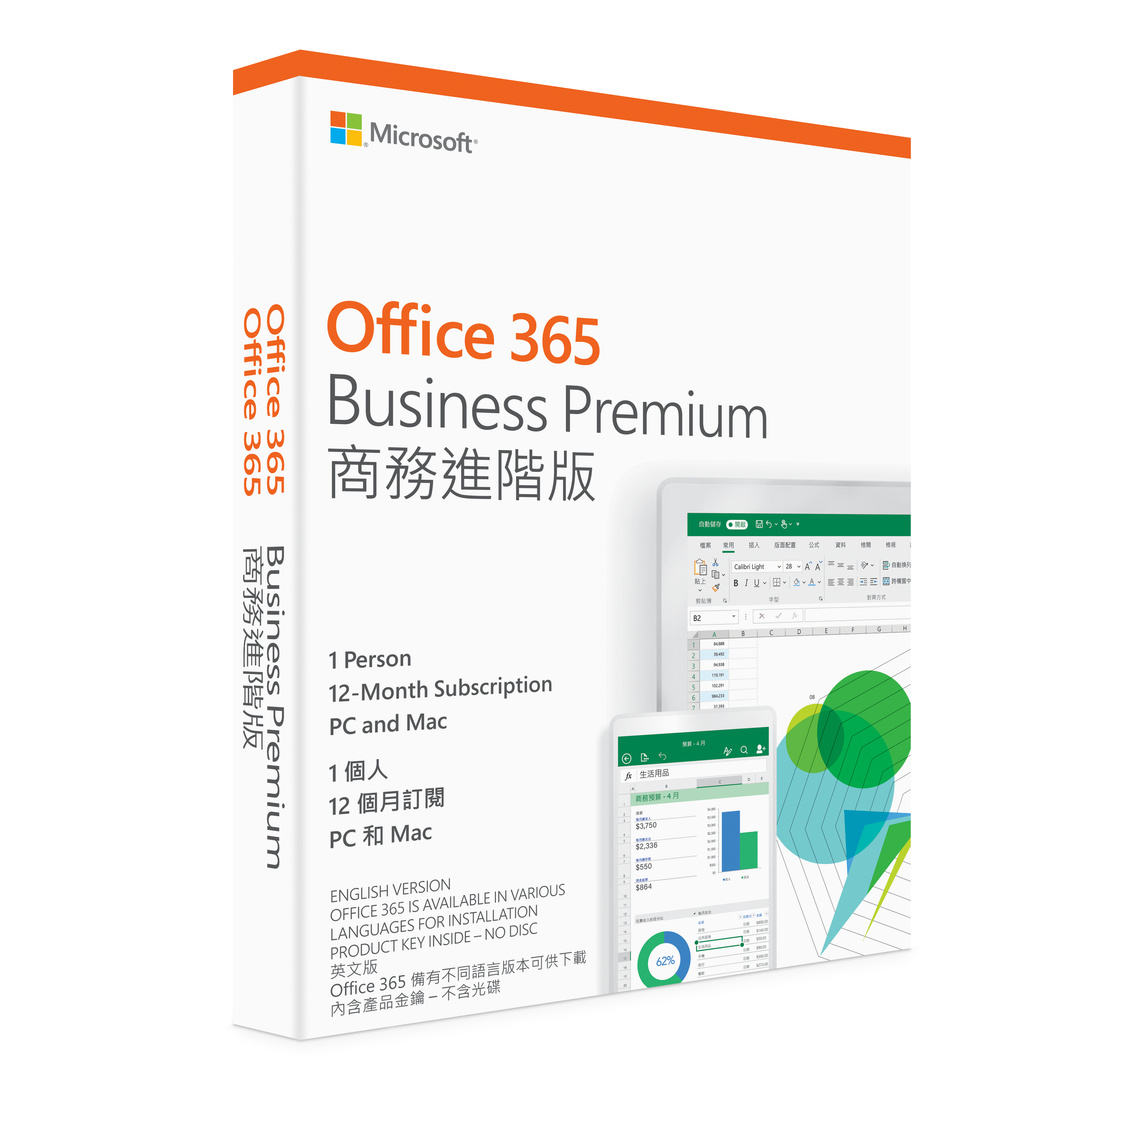 Microsoft Office 365 Business Premium (12-month Subscription) - Traditional  Chinese